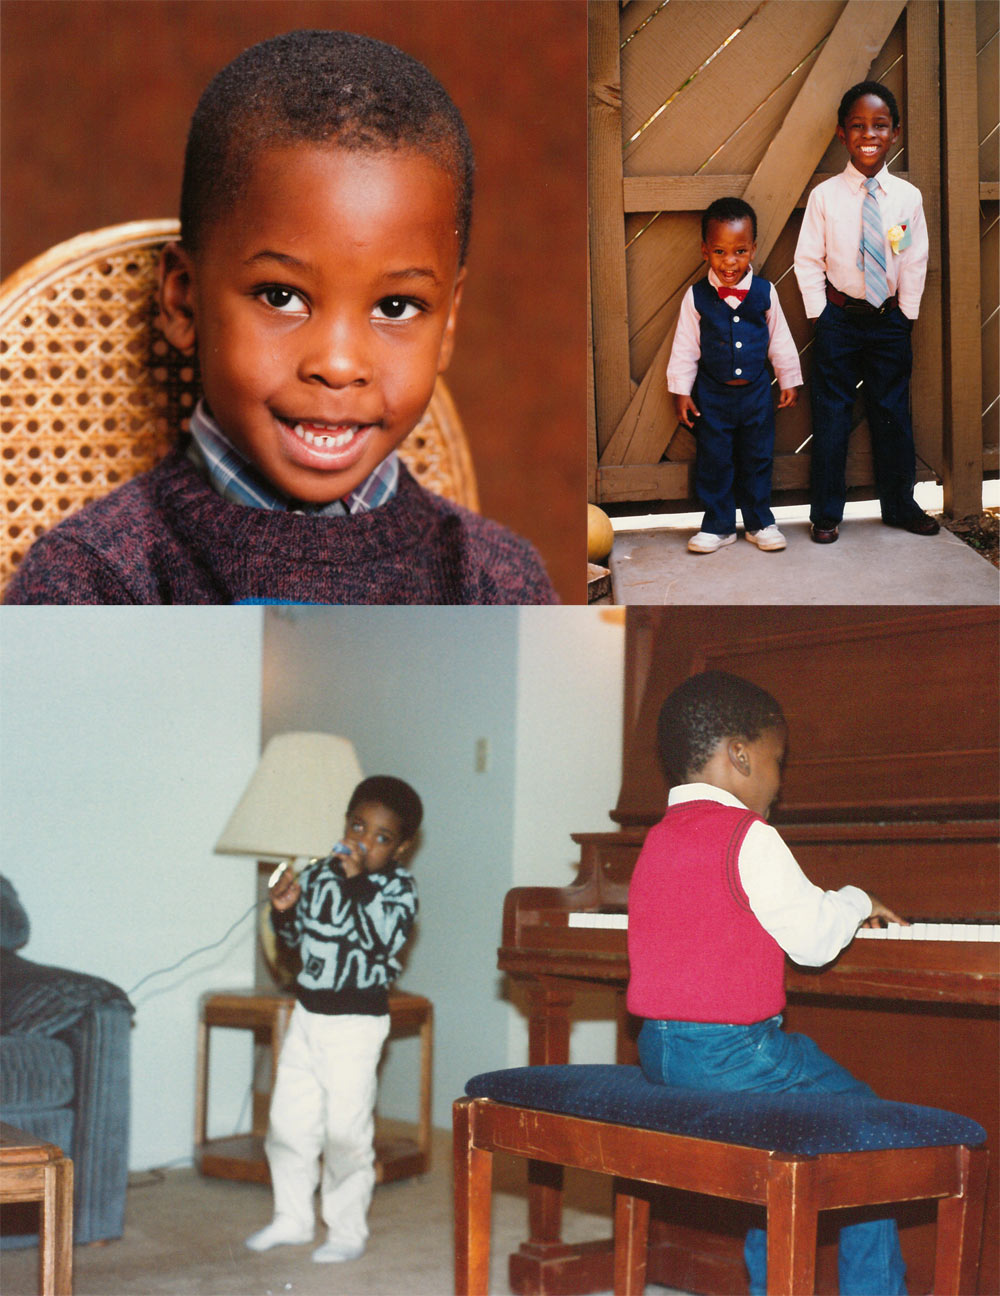 Top left: Young Ini; Top right: Ini with his older brother Koko; Bottom: Ini playing piano